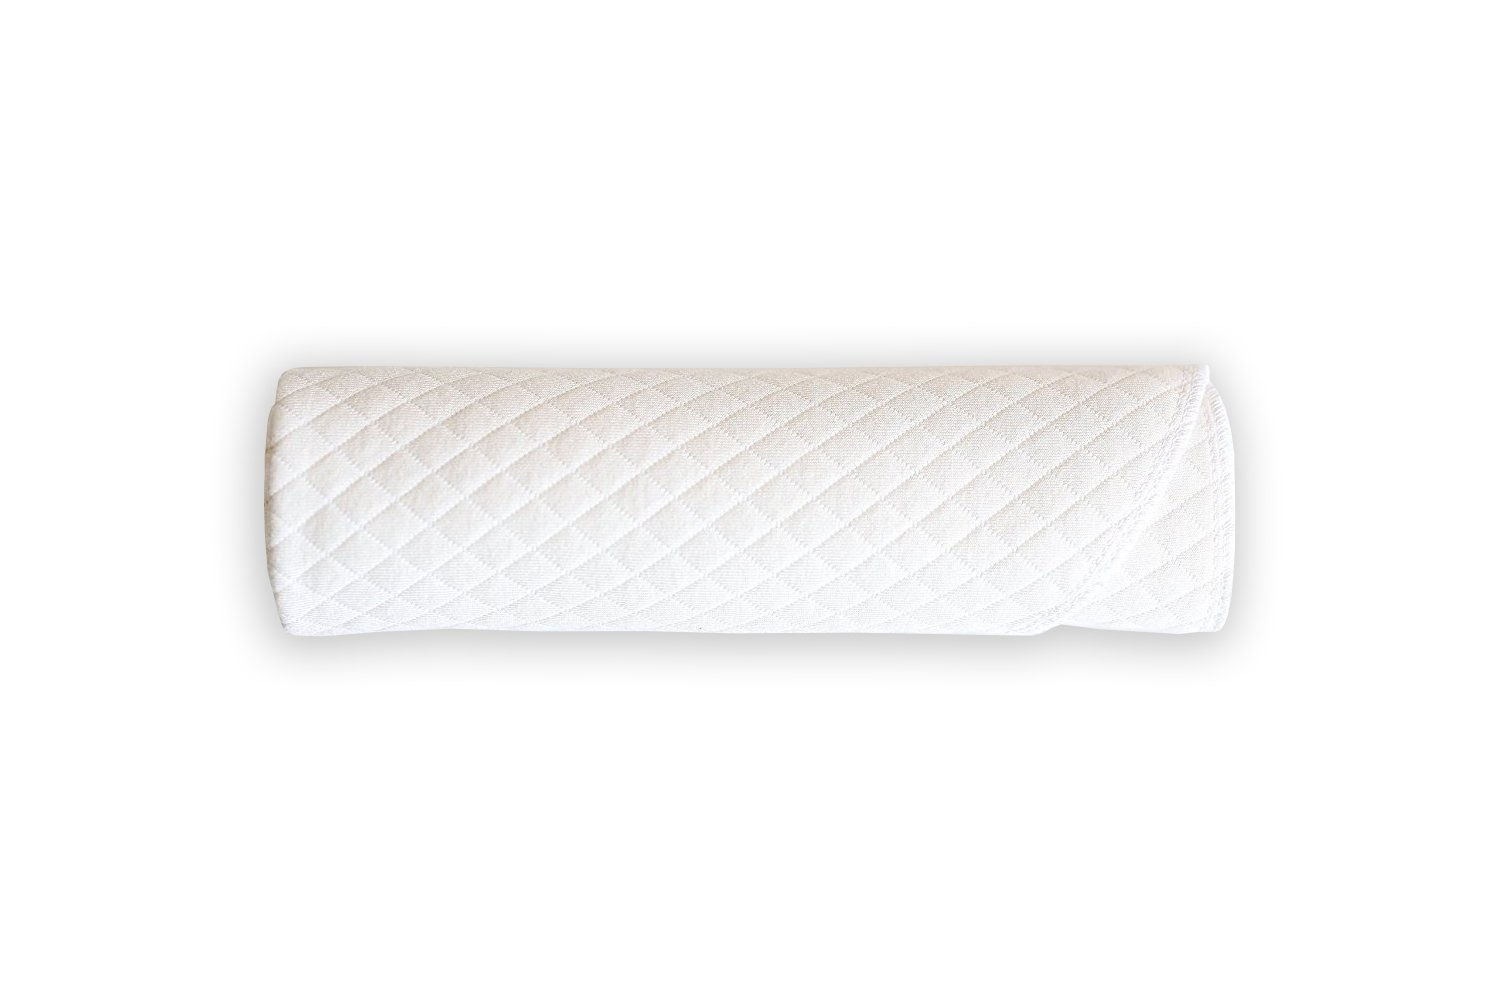 Puddle Pad | Organic Cotton Moisture Barrier for Snuggle Me Sensory Lounger Simply Mommy